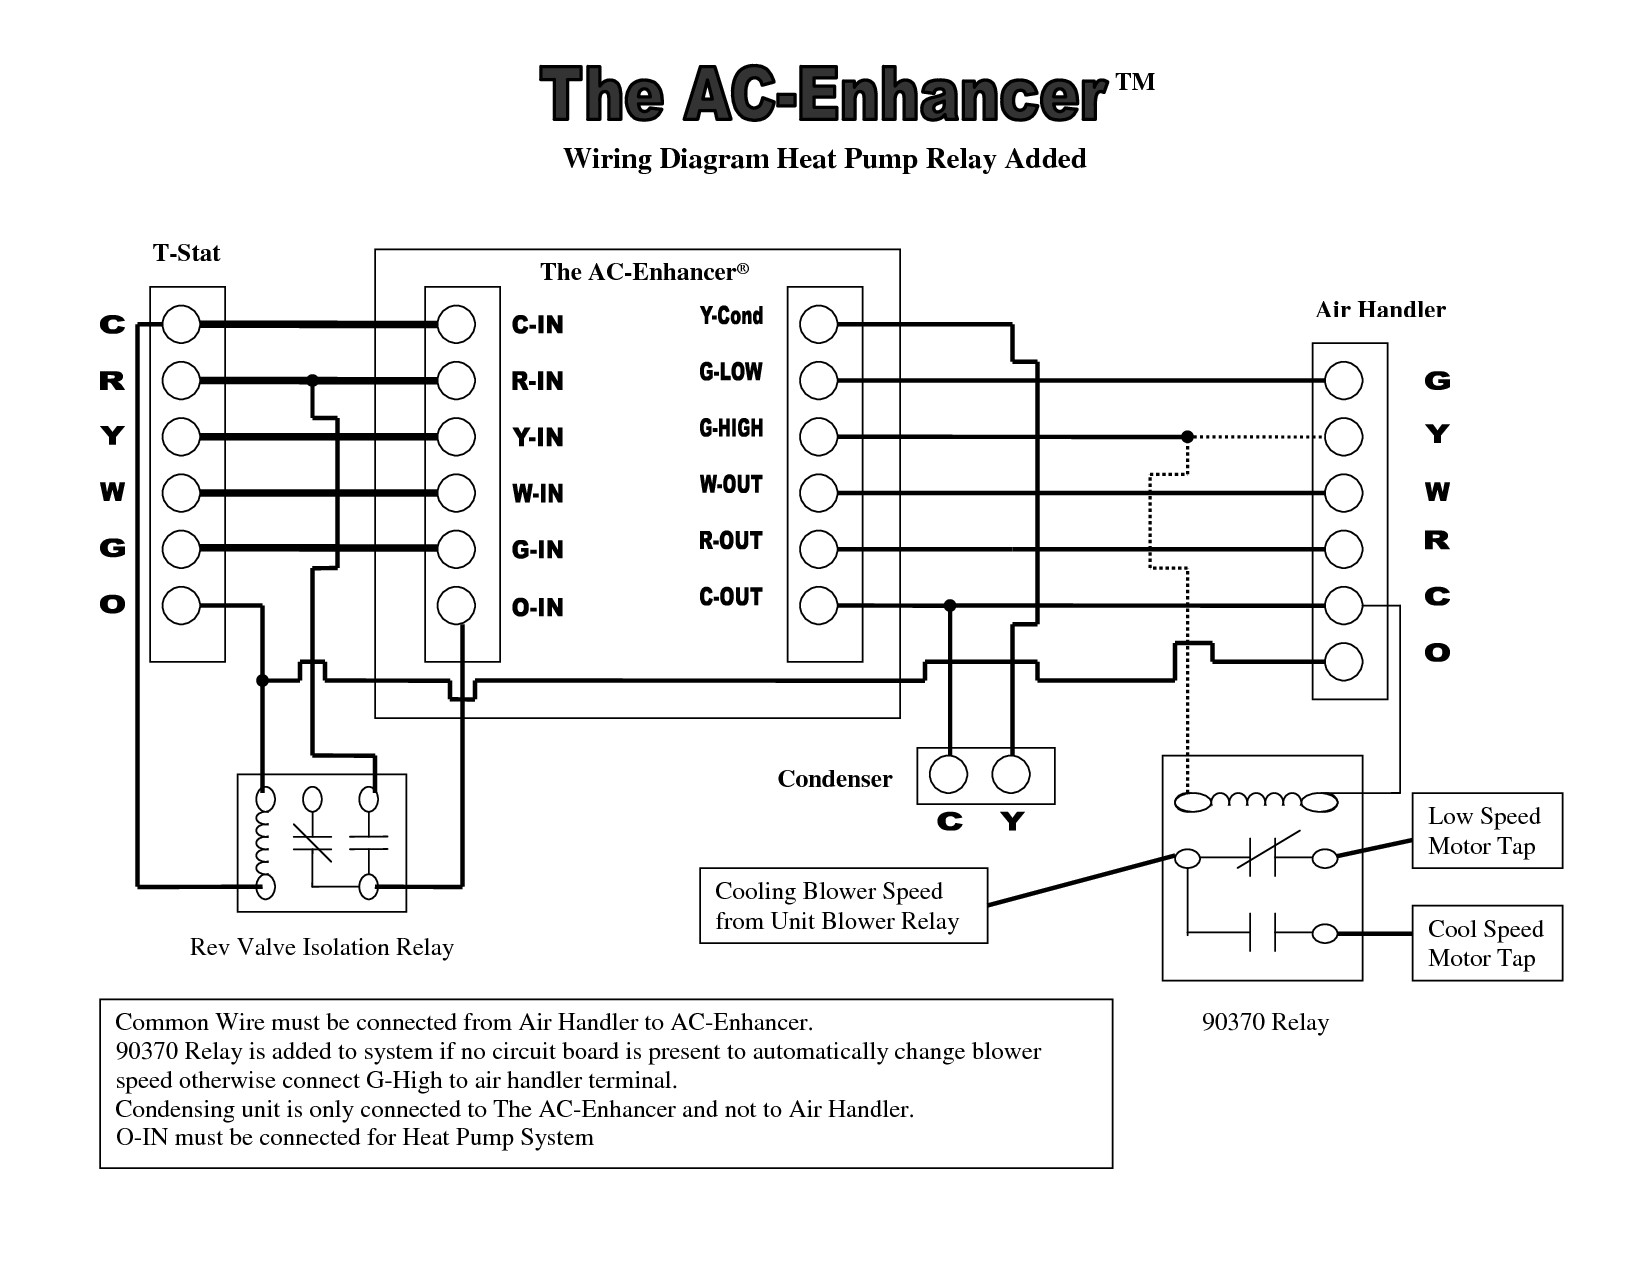 Carrier thermostat Wiring Diagram Carrier Wiring Diagrams Blurts Of Carrier thermostat Wiring Diagram